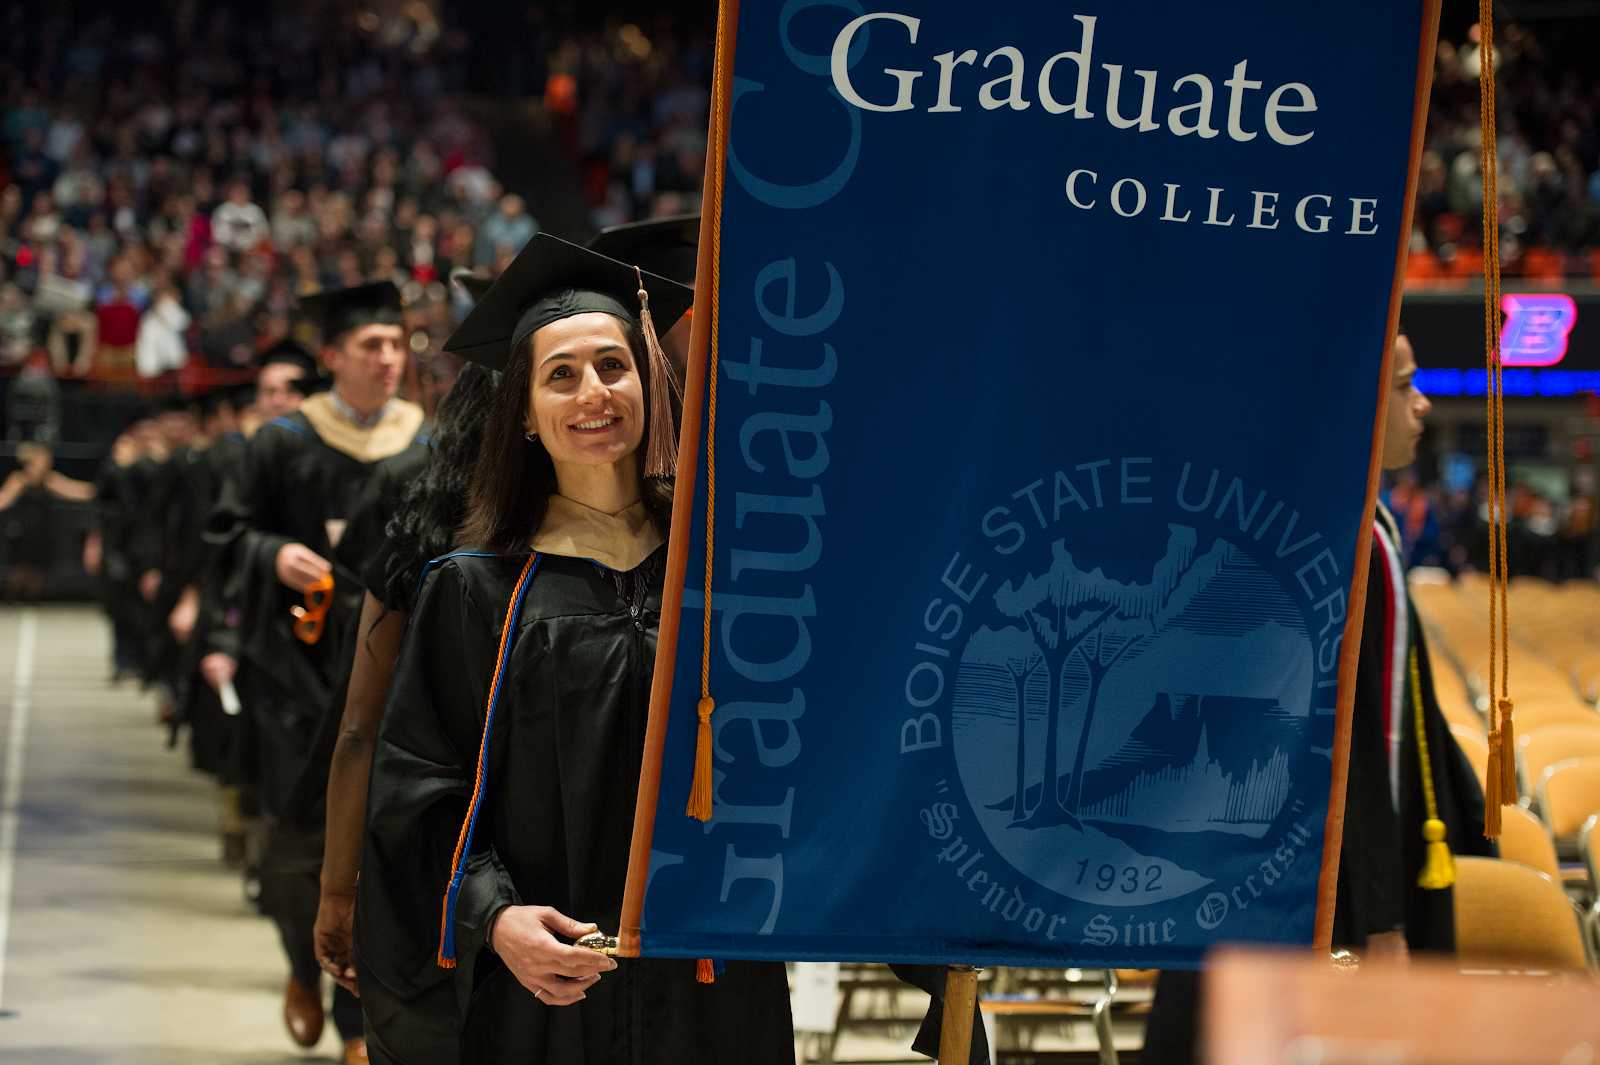 New Online MBA Programs to Debut this Fall - Boise State News